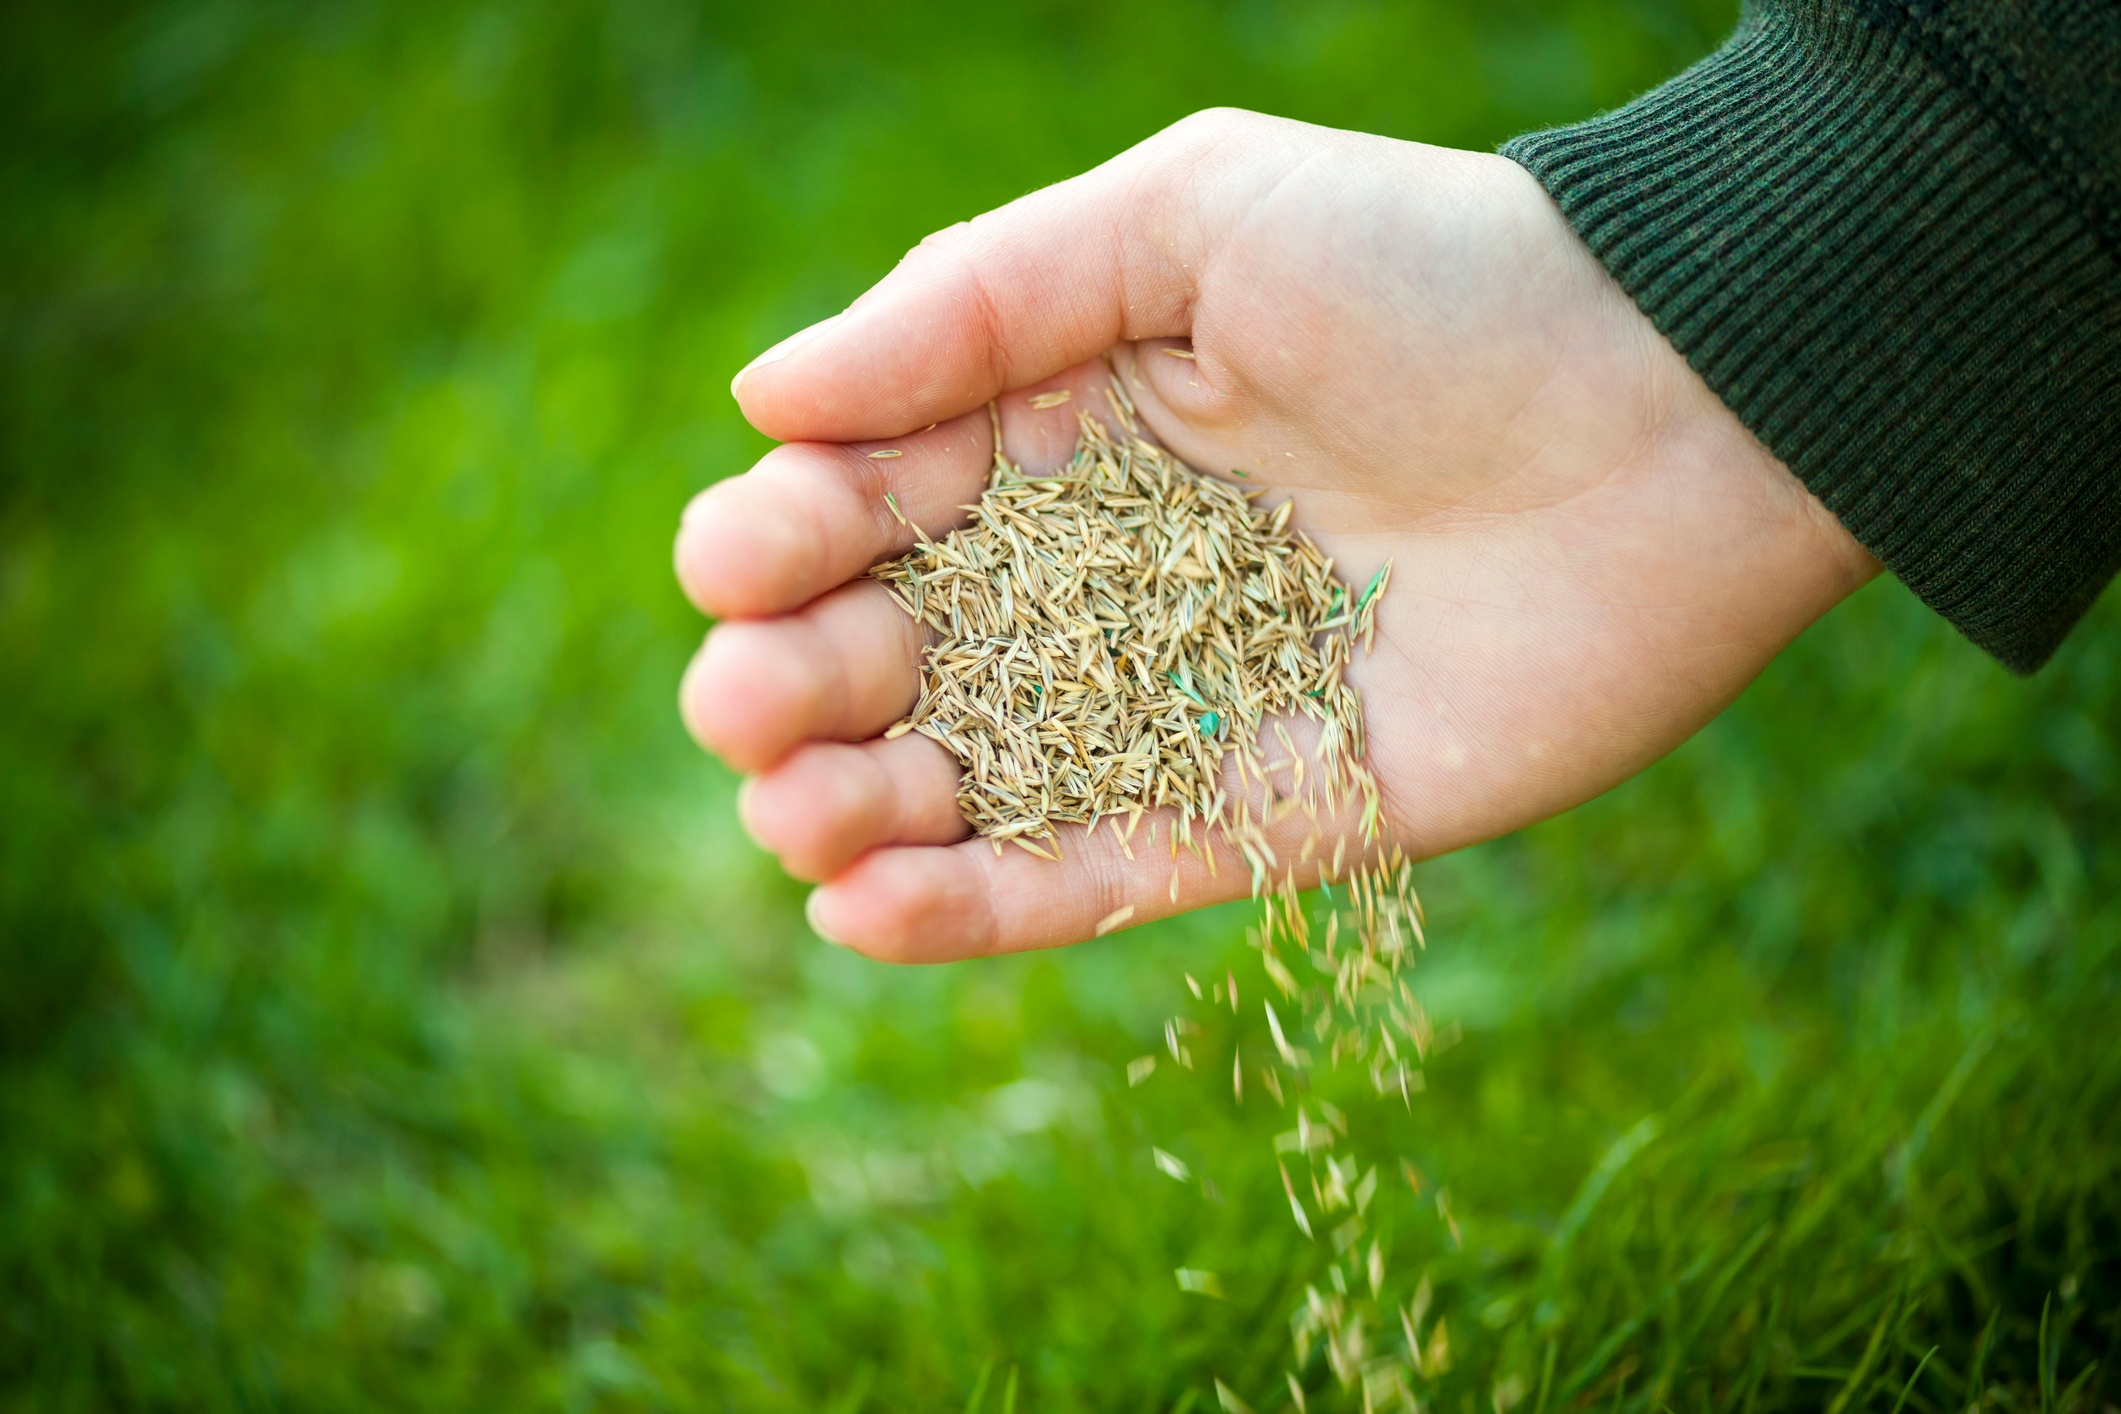 In order to get good results with any lawn seeding project, the seed must be in contact with soil.